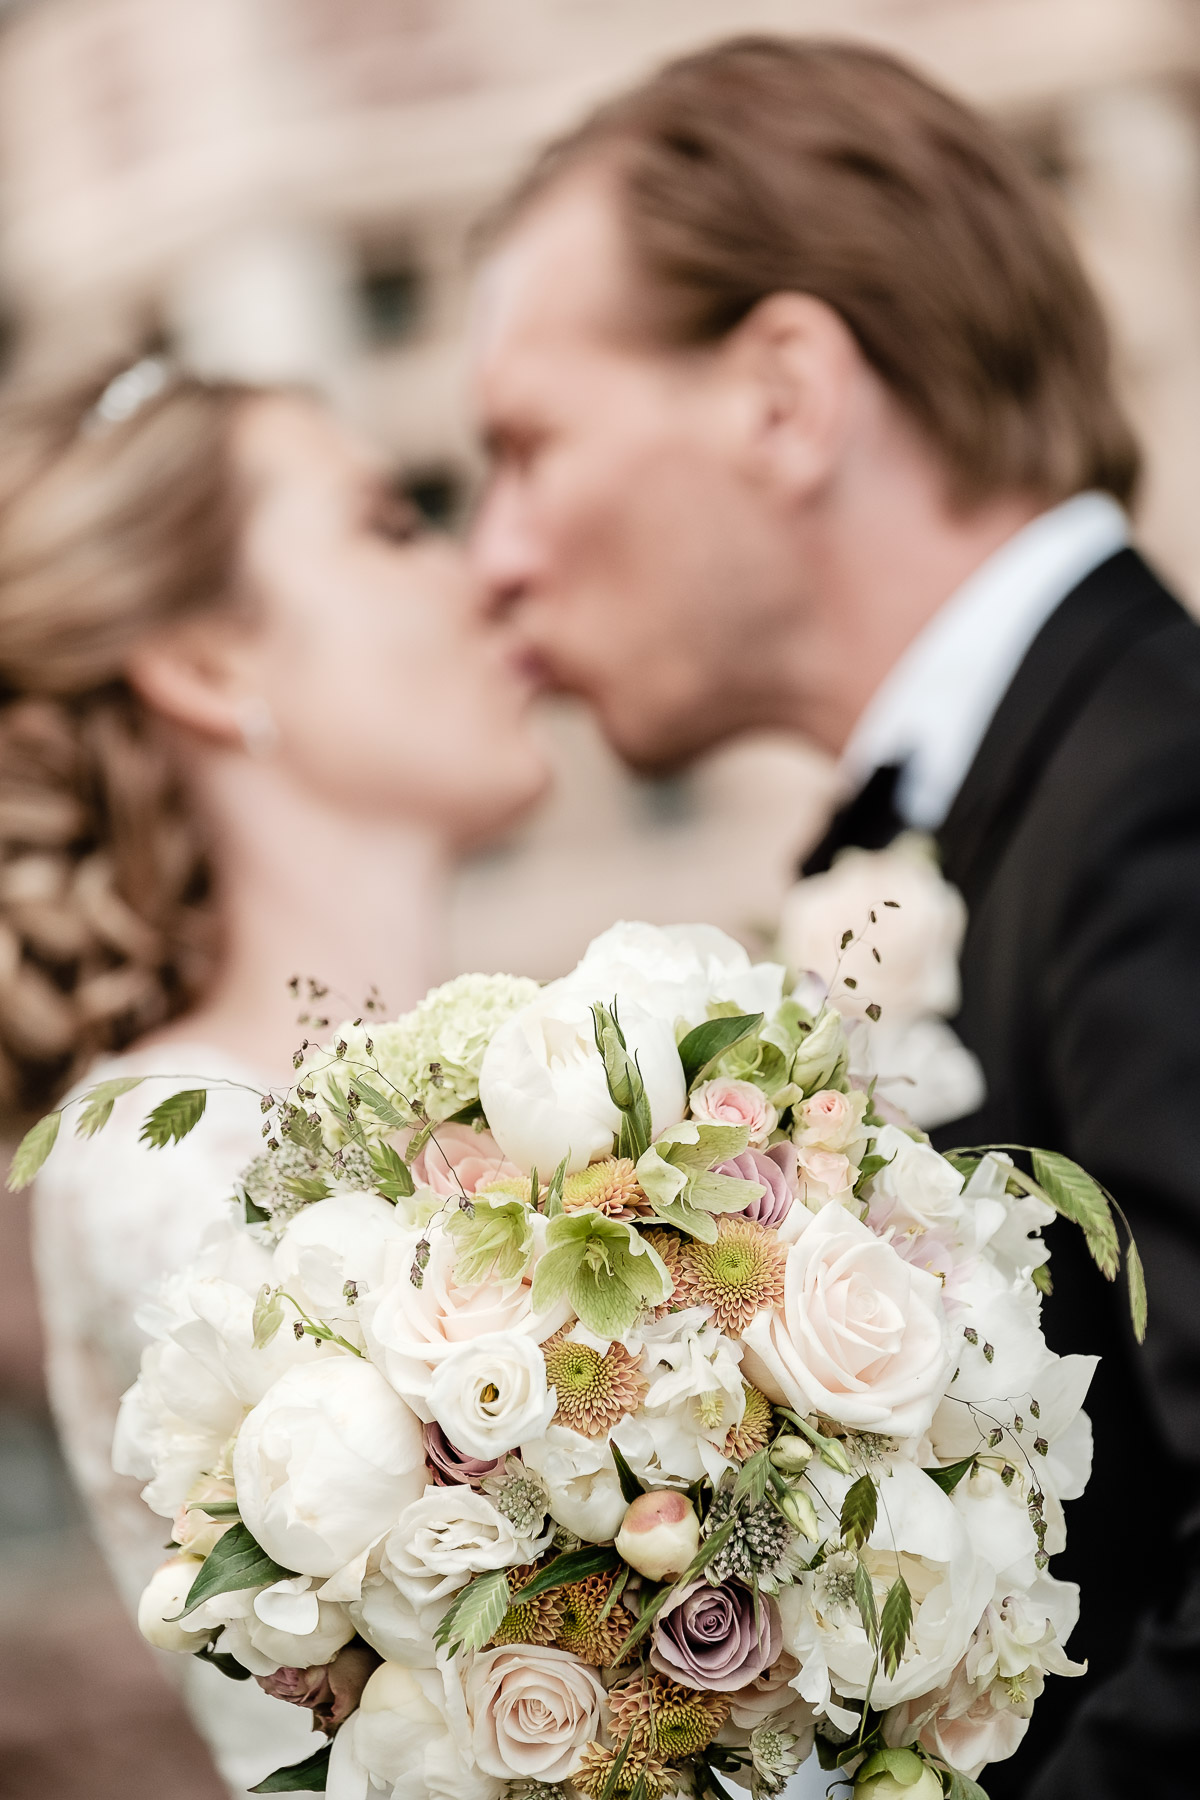 Click to enlarge image hanna&andreas-tjoloholmsslott-ottossonphoto-1031.jpg